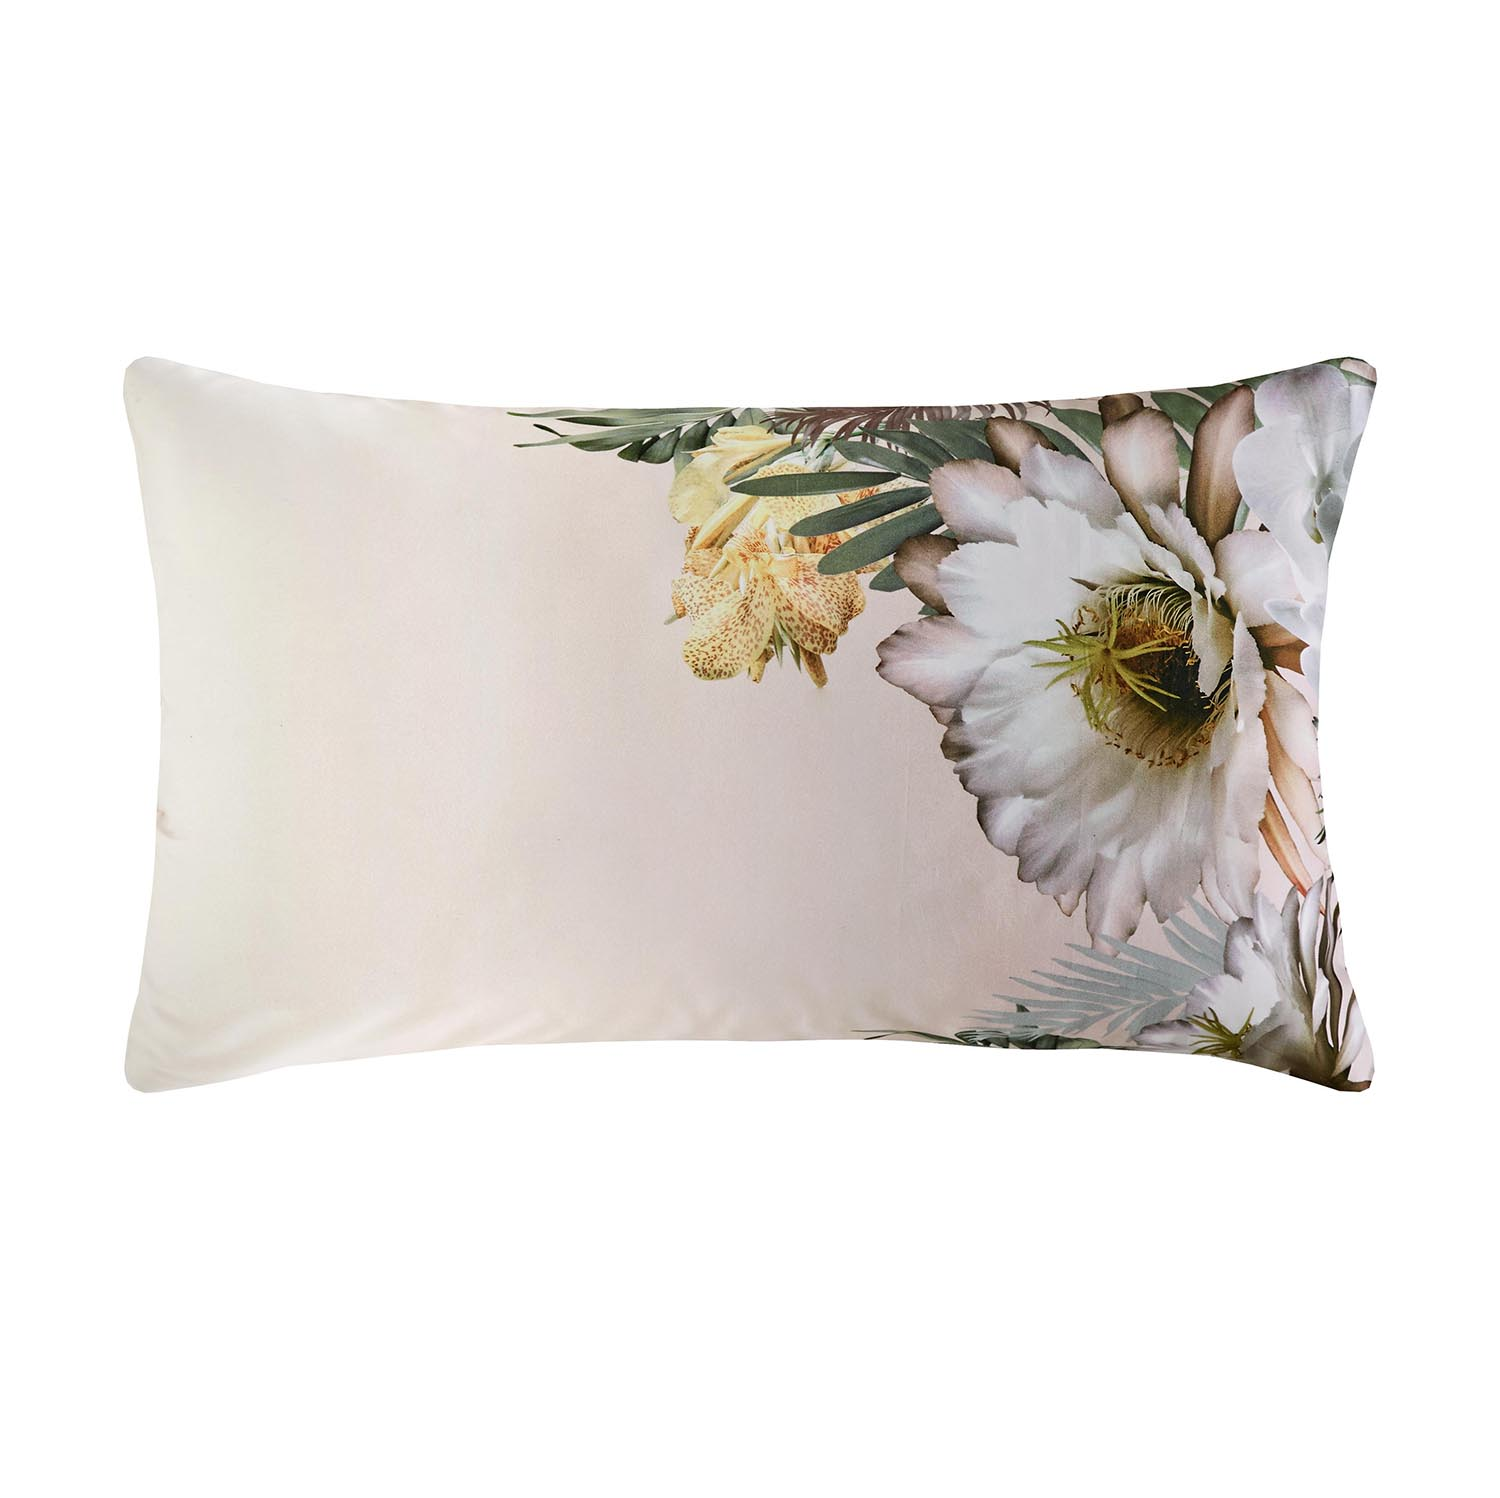 Ted Baker Woodland Pillowcase Pair